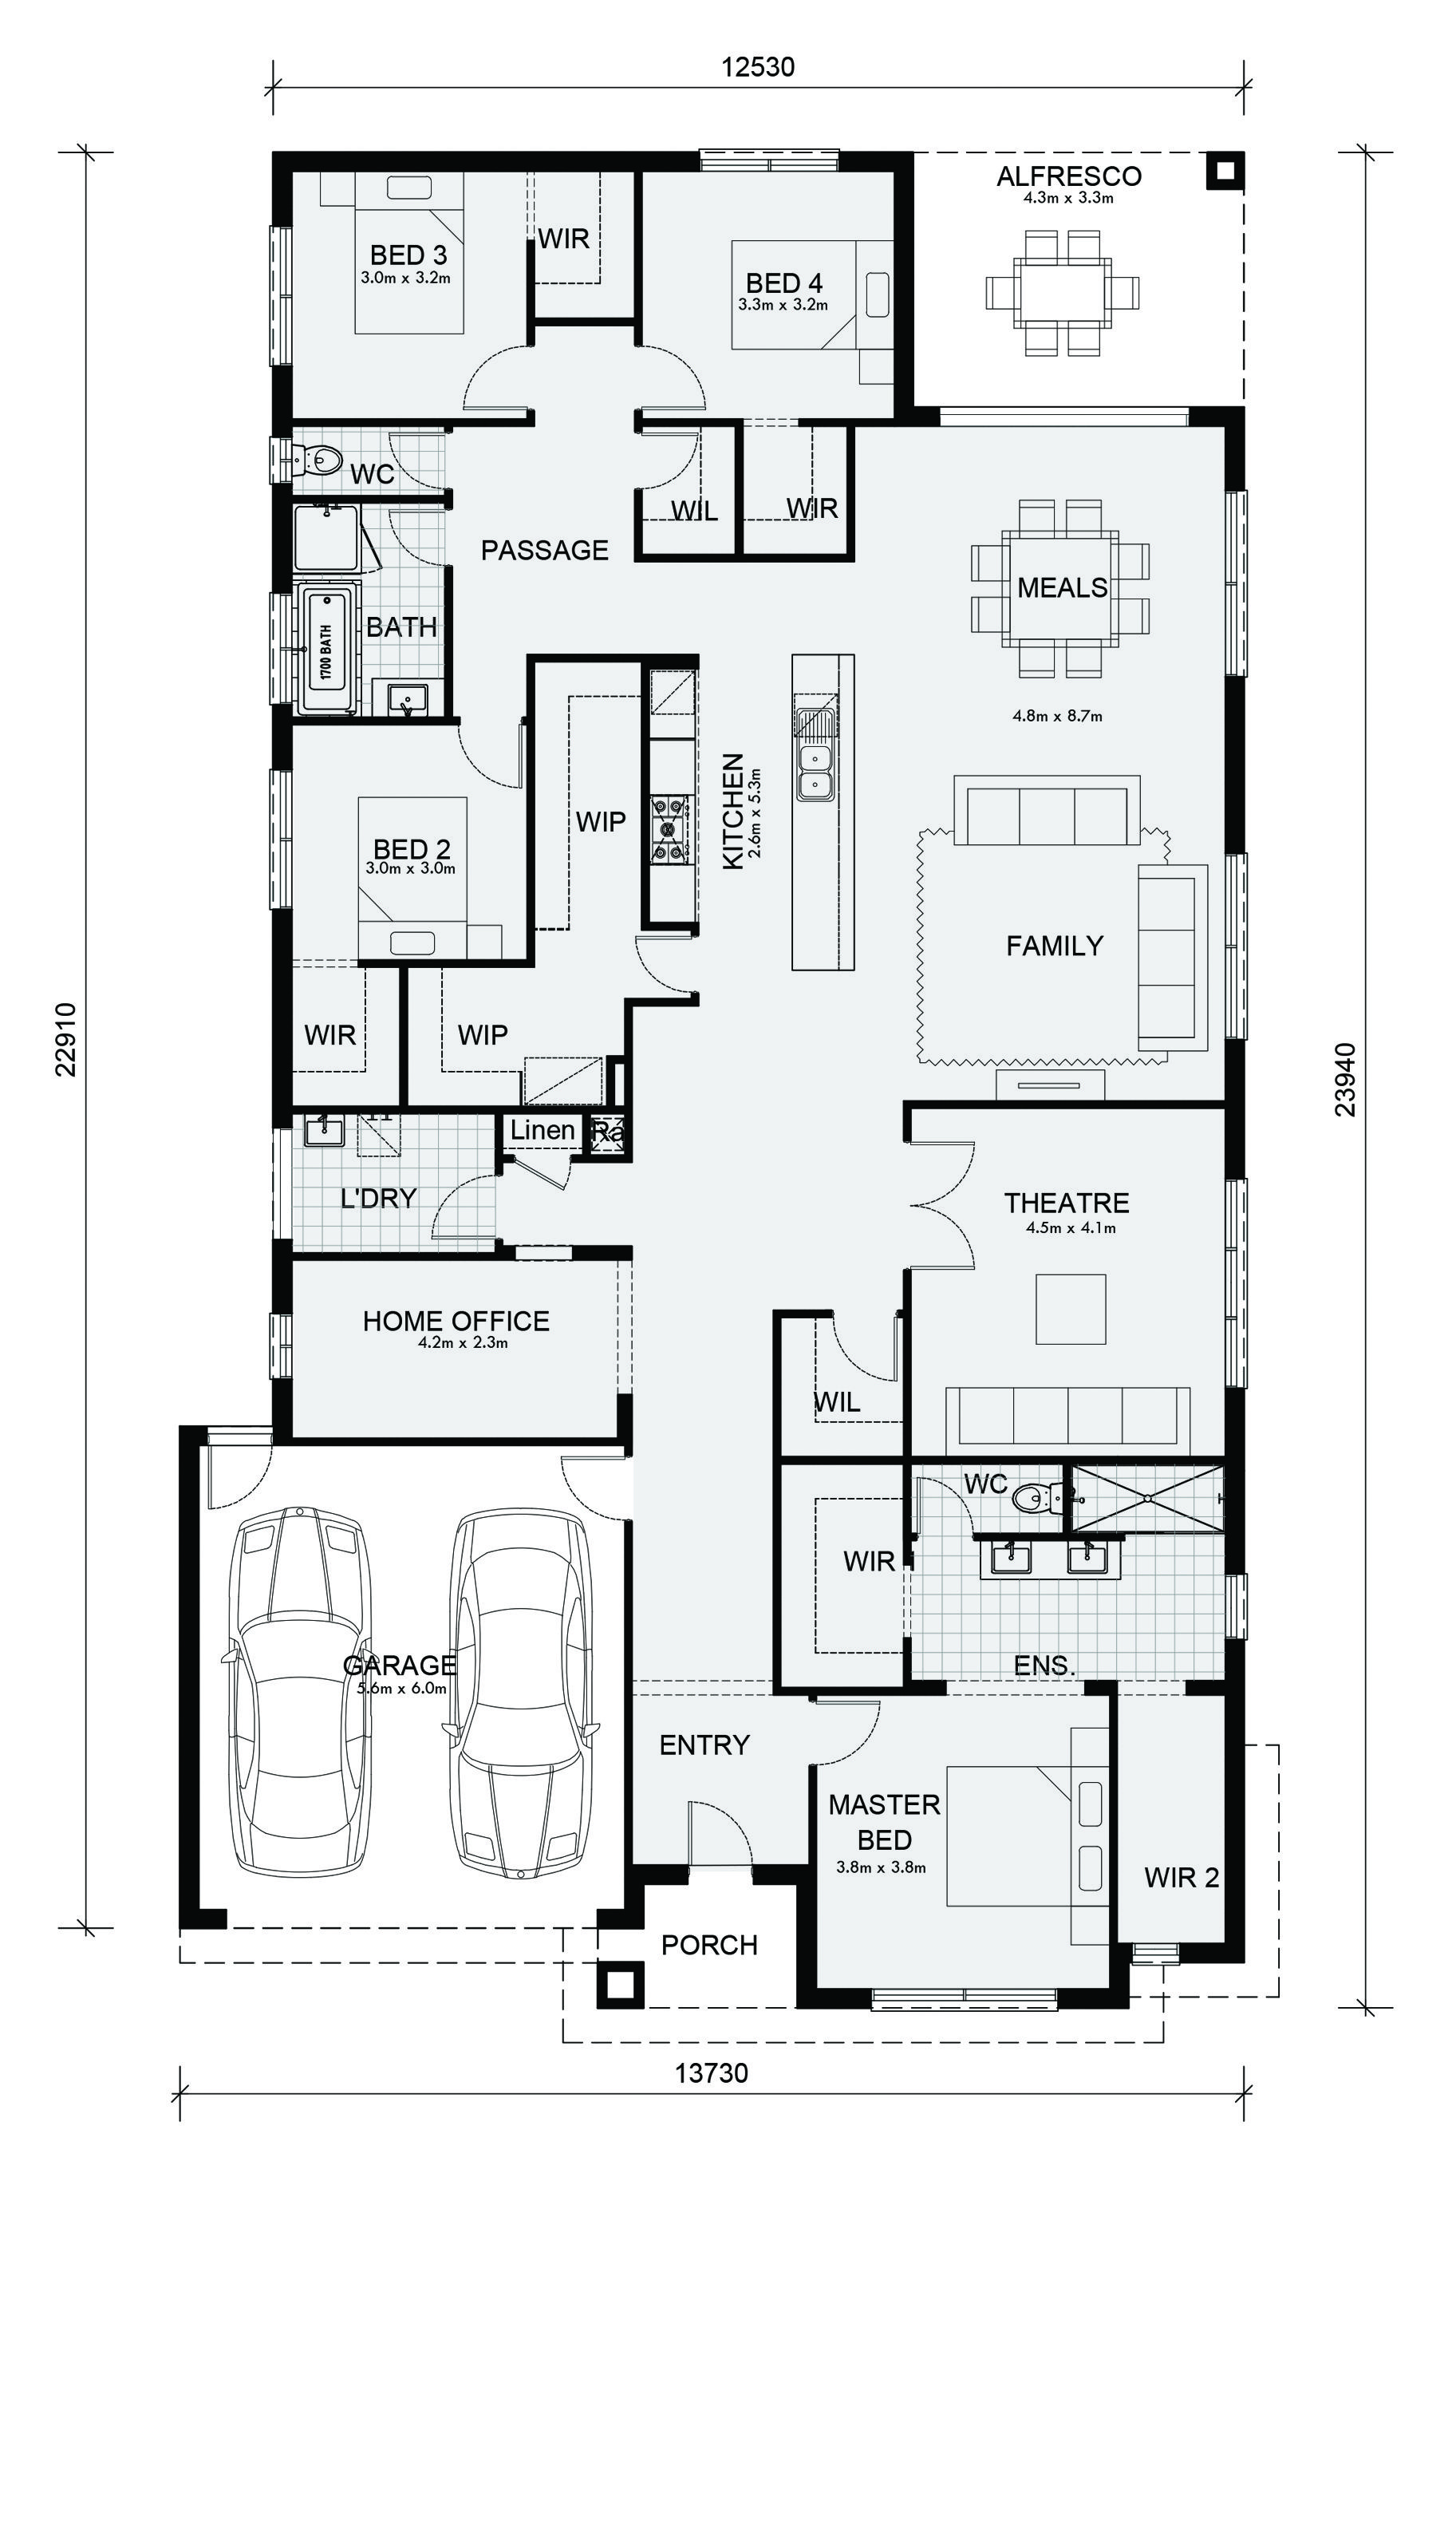 Beautiful Home Designs Mandurah 326 Mimosa Homes New House Plans Home Design Floor Plans Dream House Plans